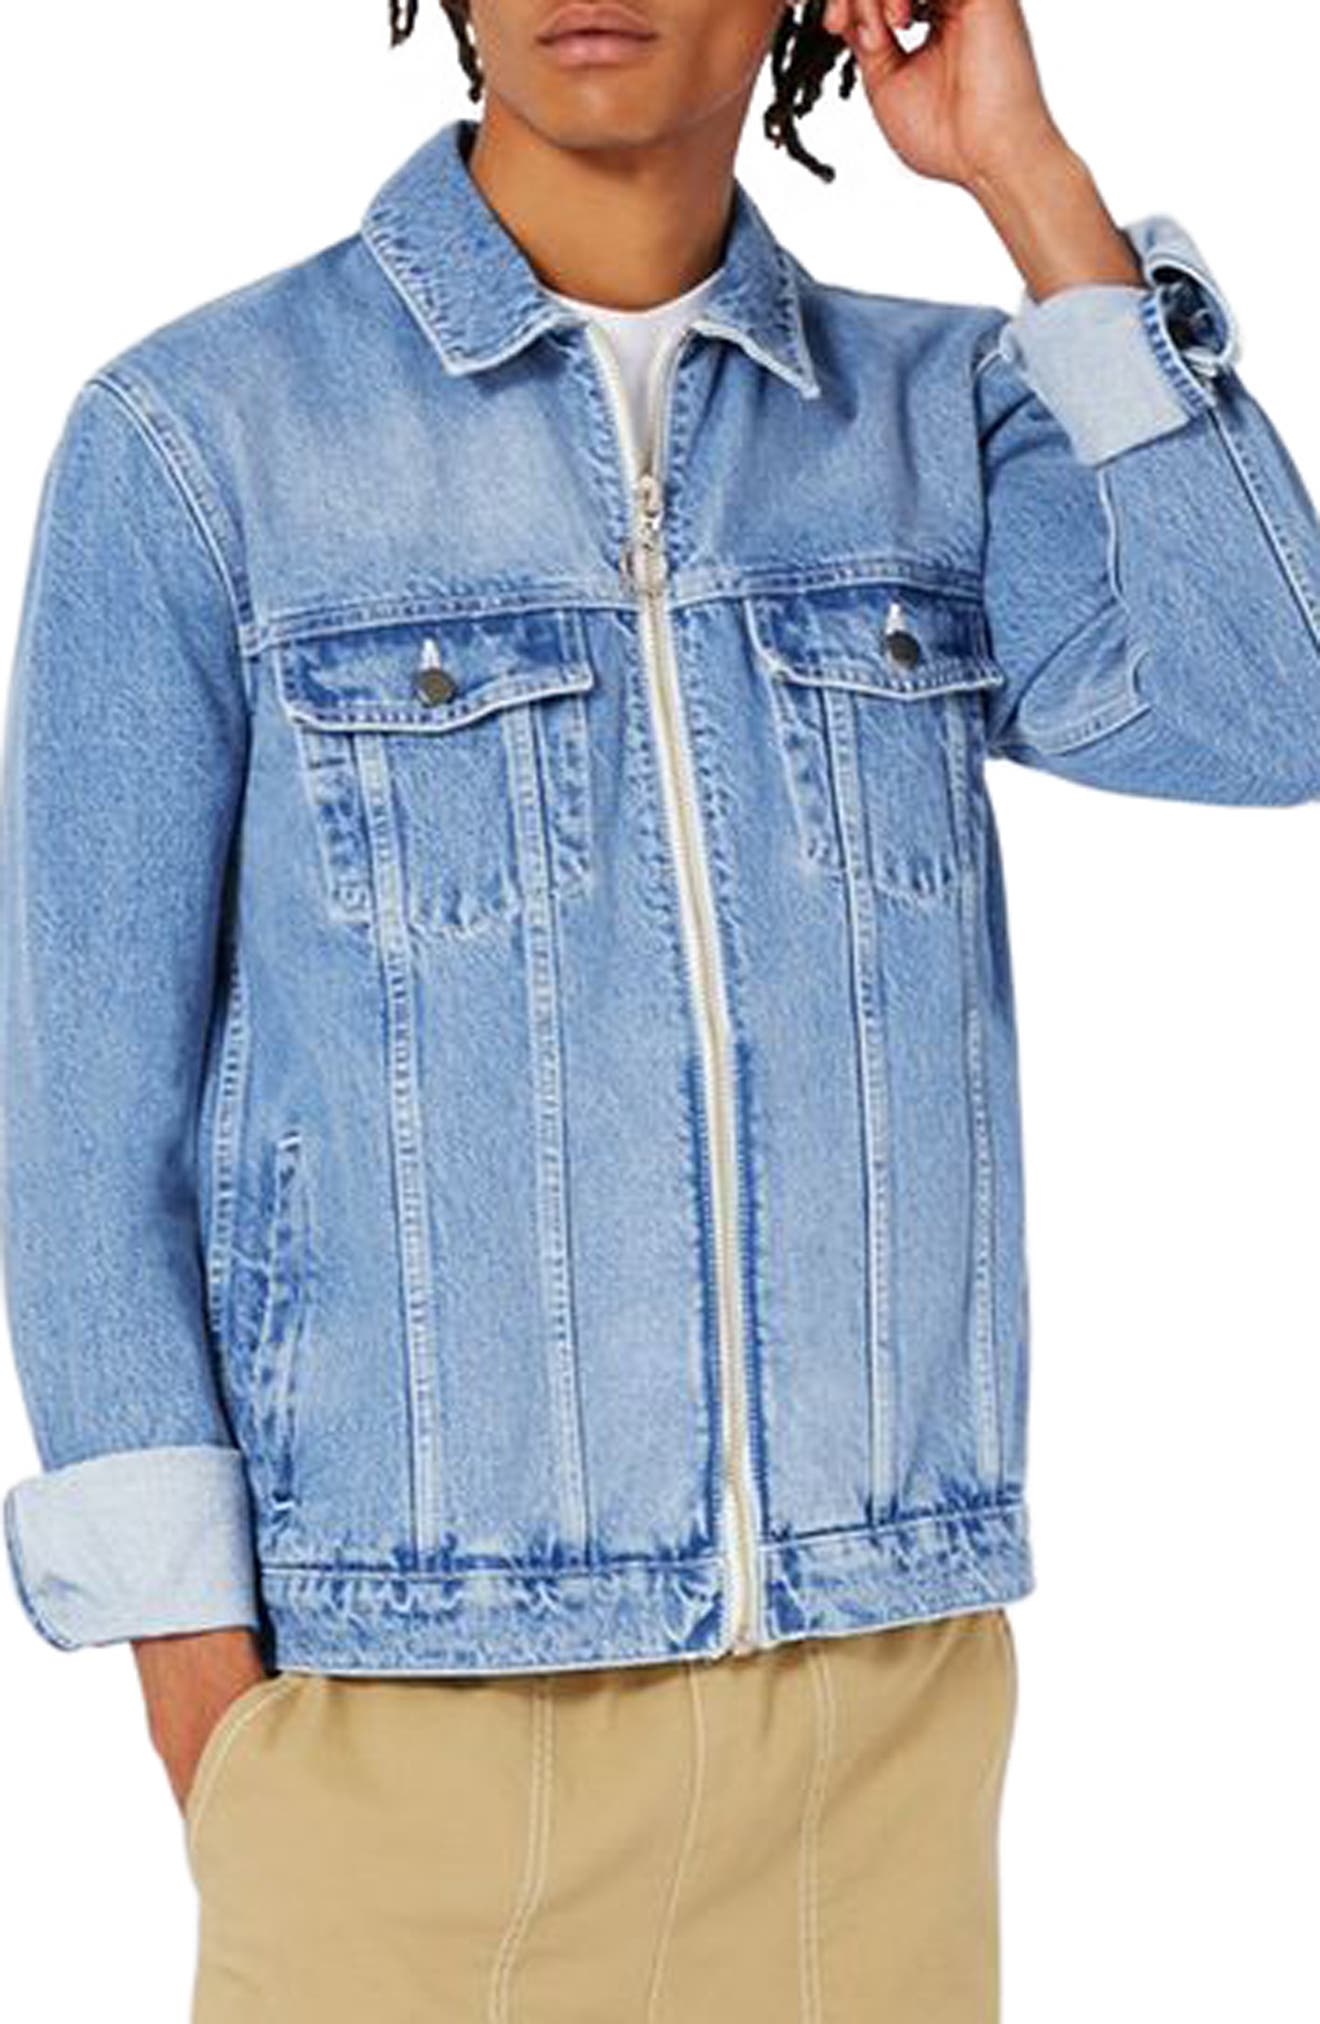 Topman LTD Collection Denim Trucker Jacket